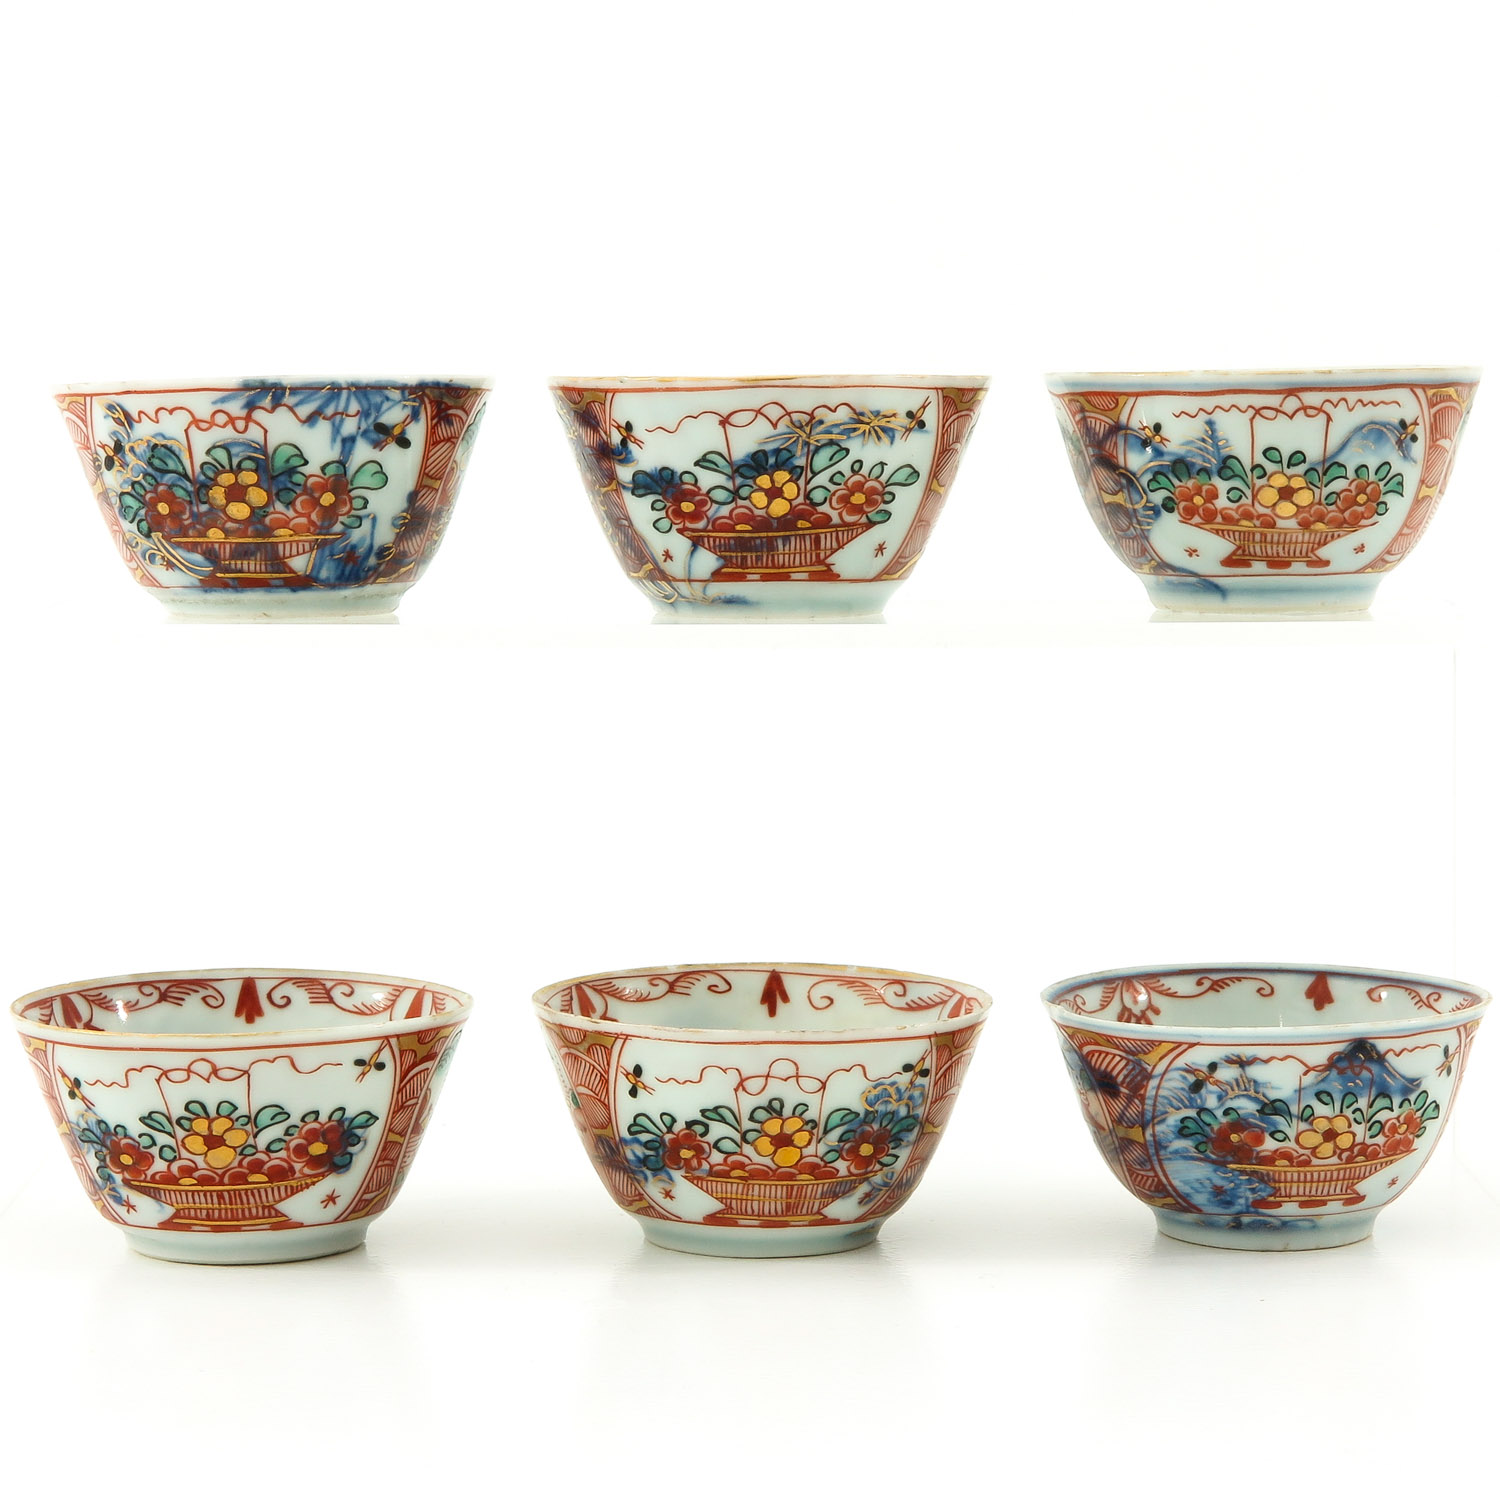 A Series of 6 Cups and Saucers - Image 3 of 10